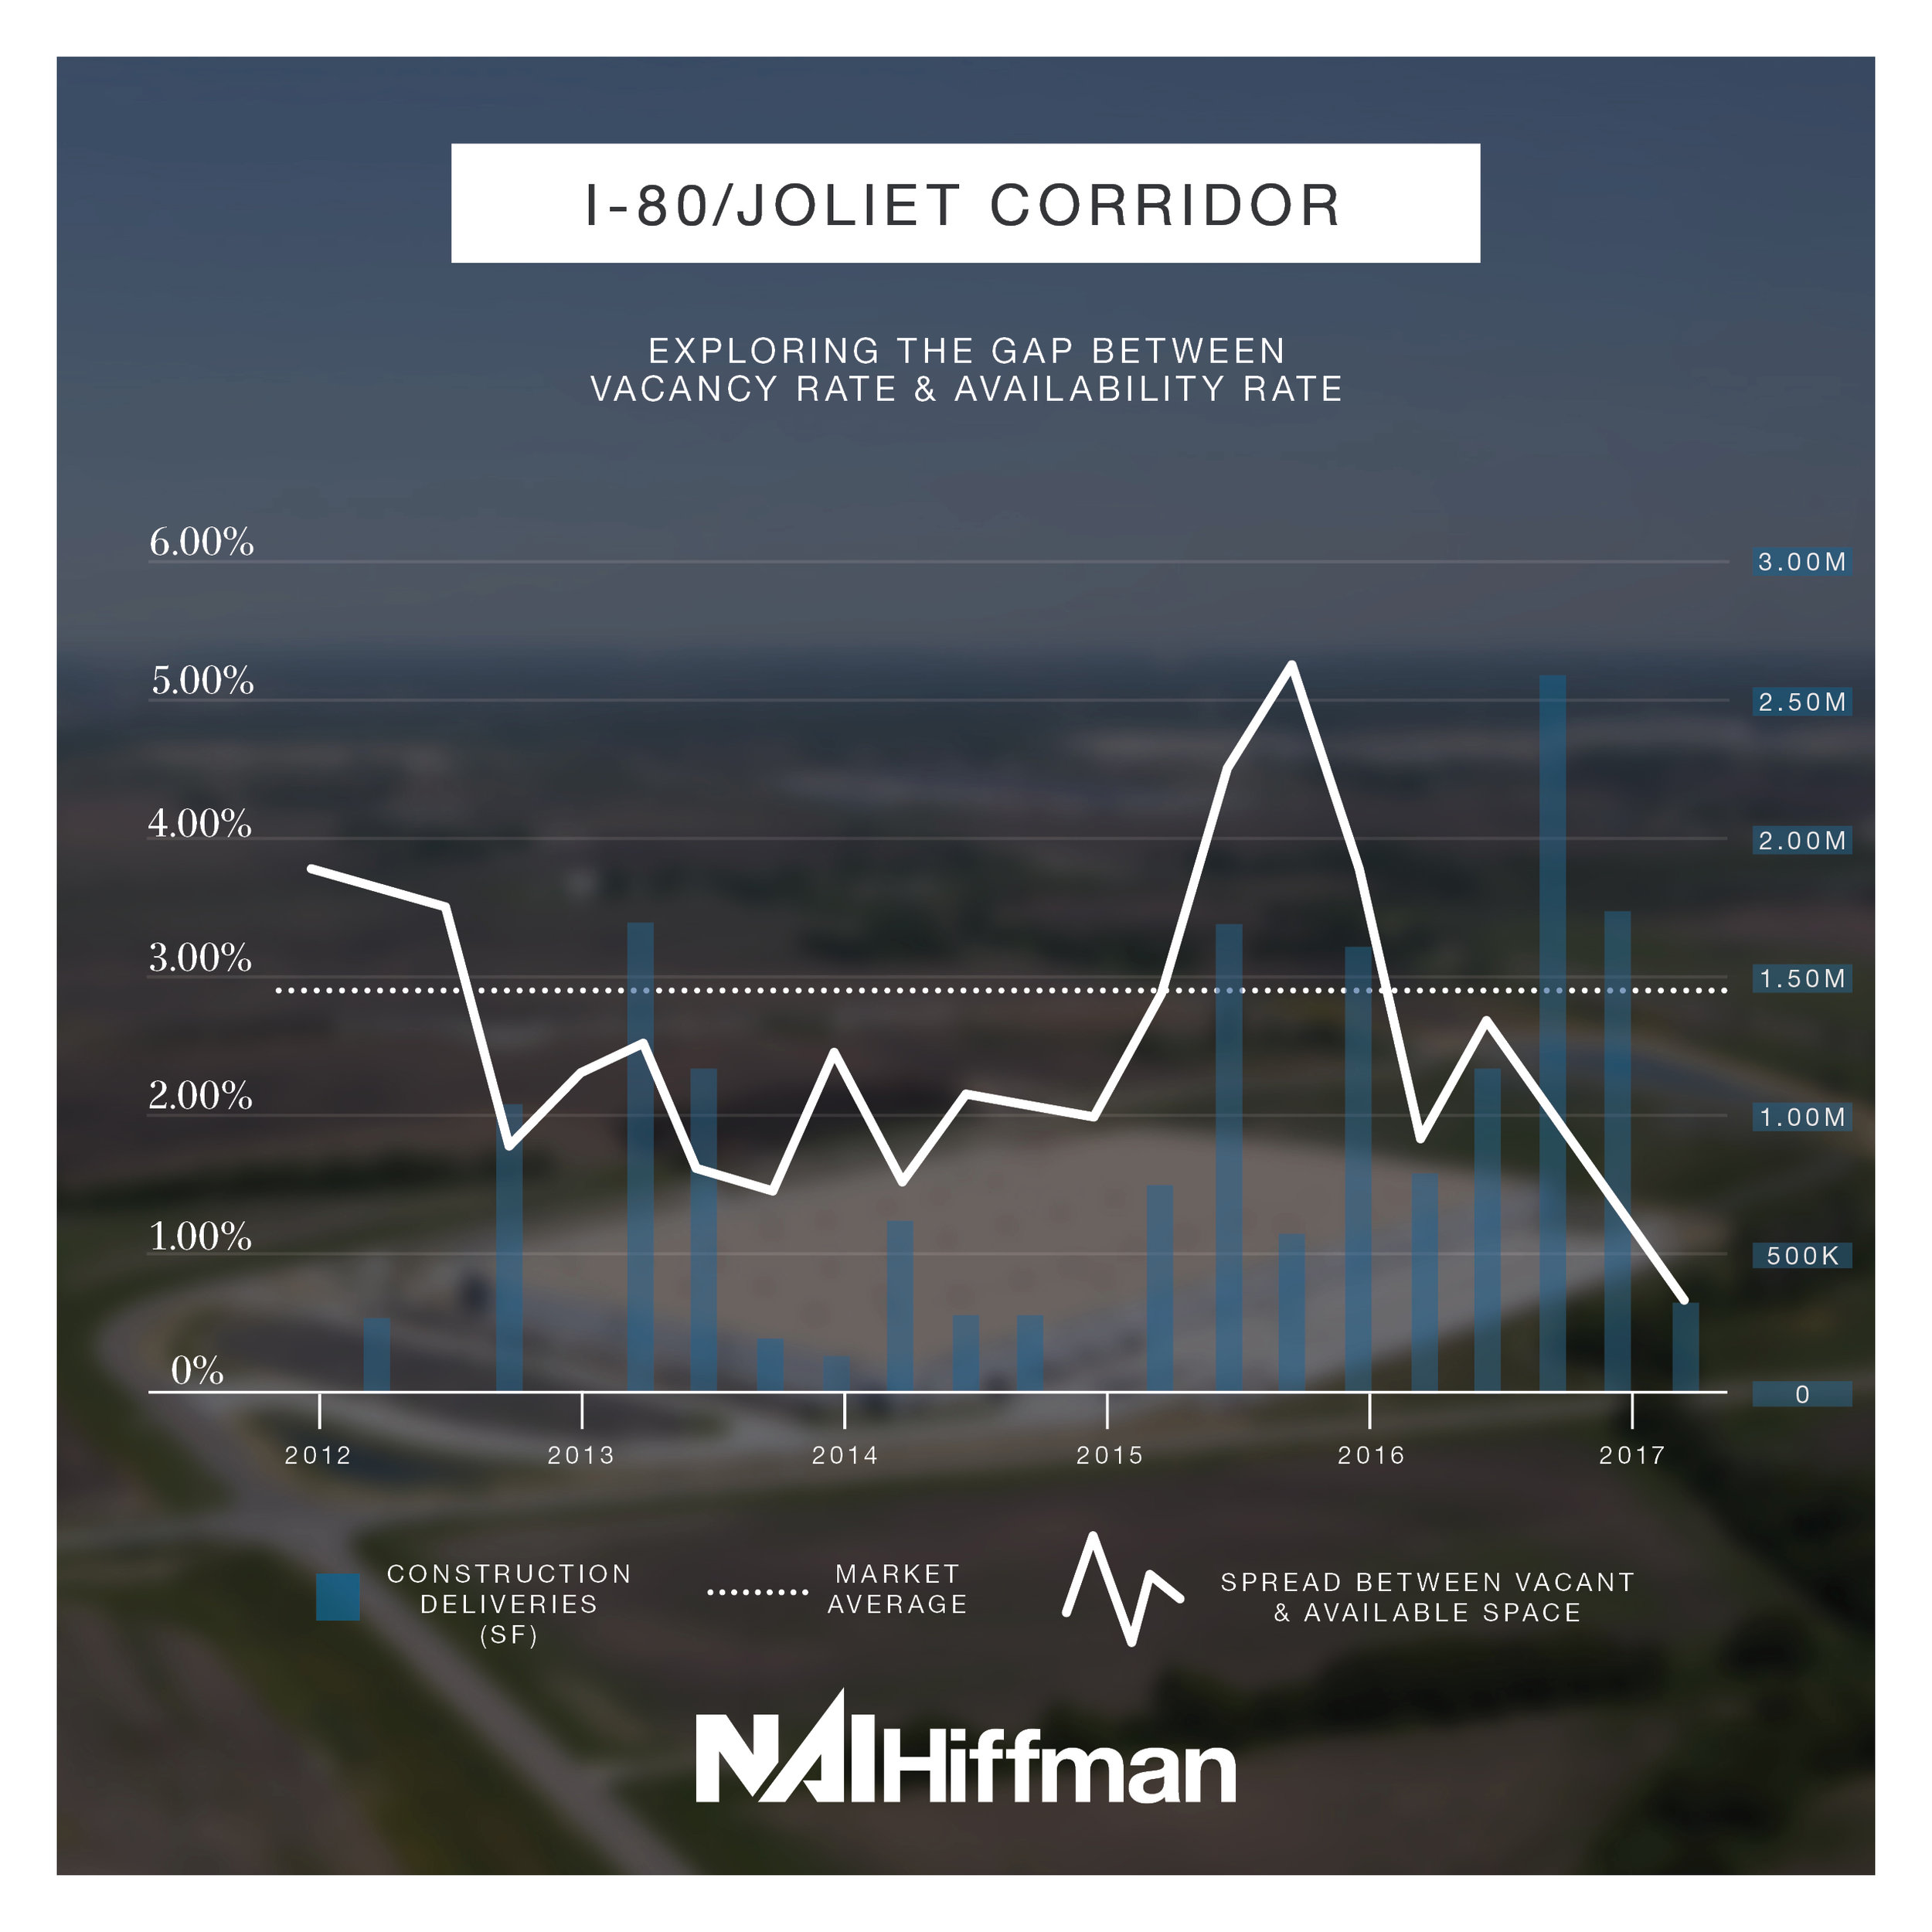 I-80/Joliet Corridor  – Construction deliveries picked up in the I-80/Joliet corridor at the beginning of 2015 and, since then, the demand has drastically outpaced supply with strong leasing activity for the past 6 quarters.